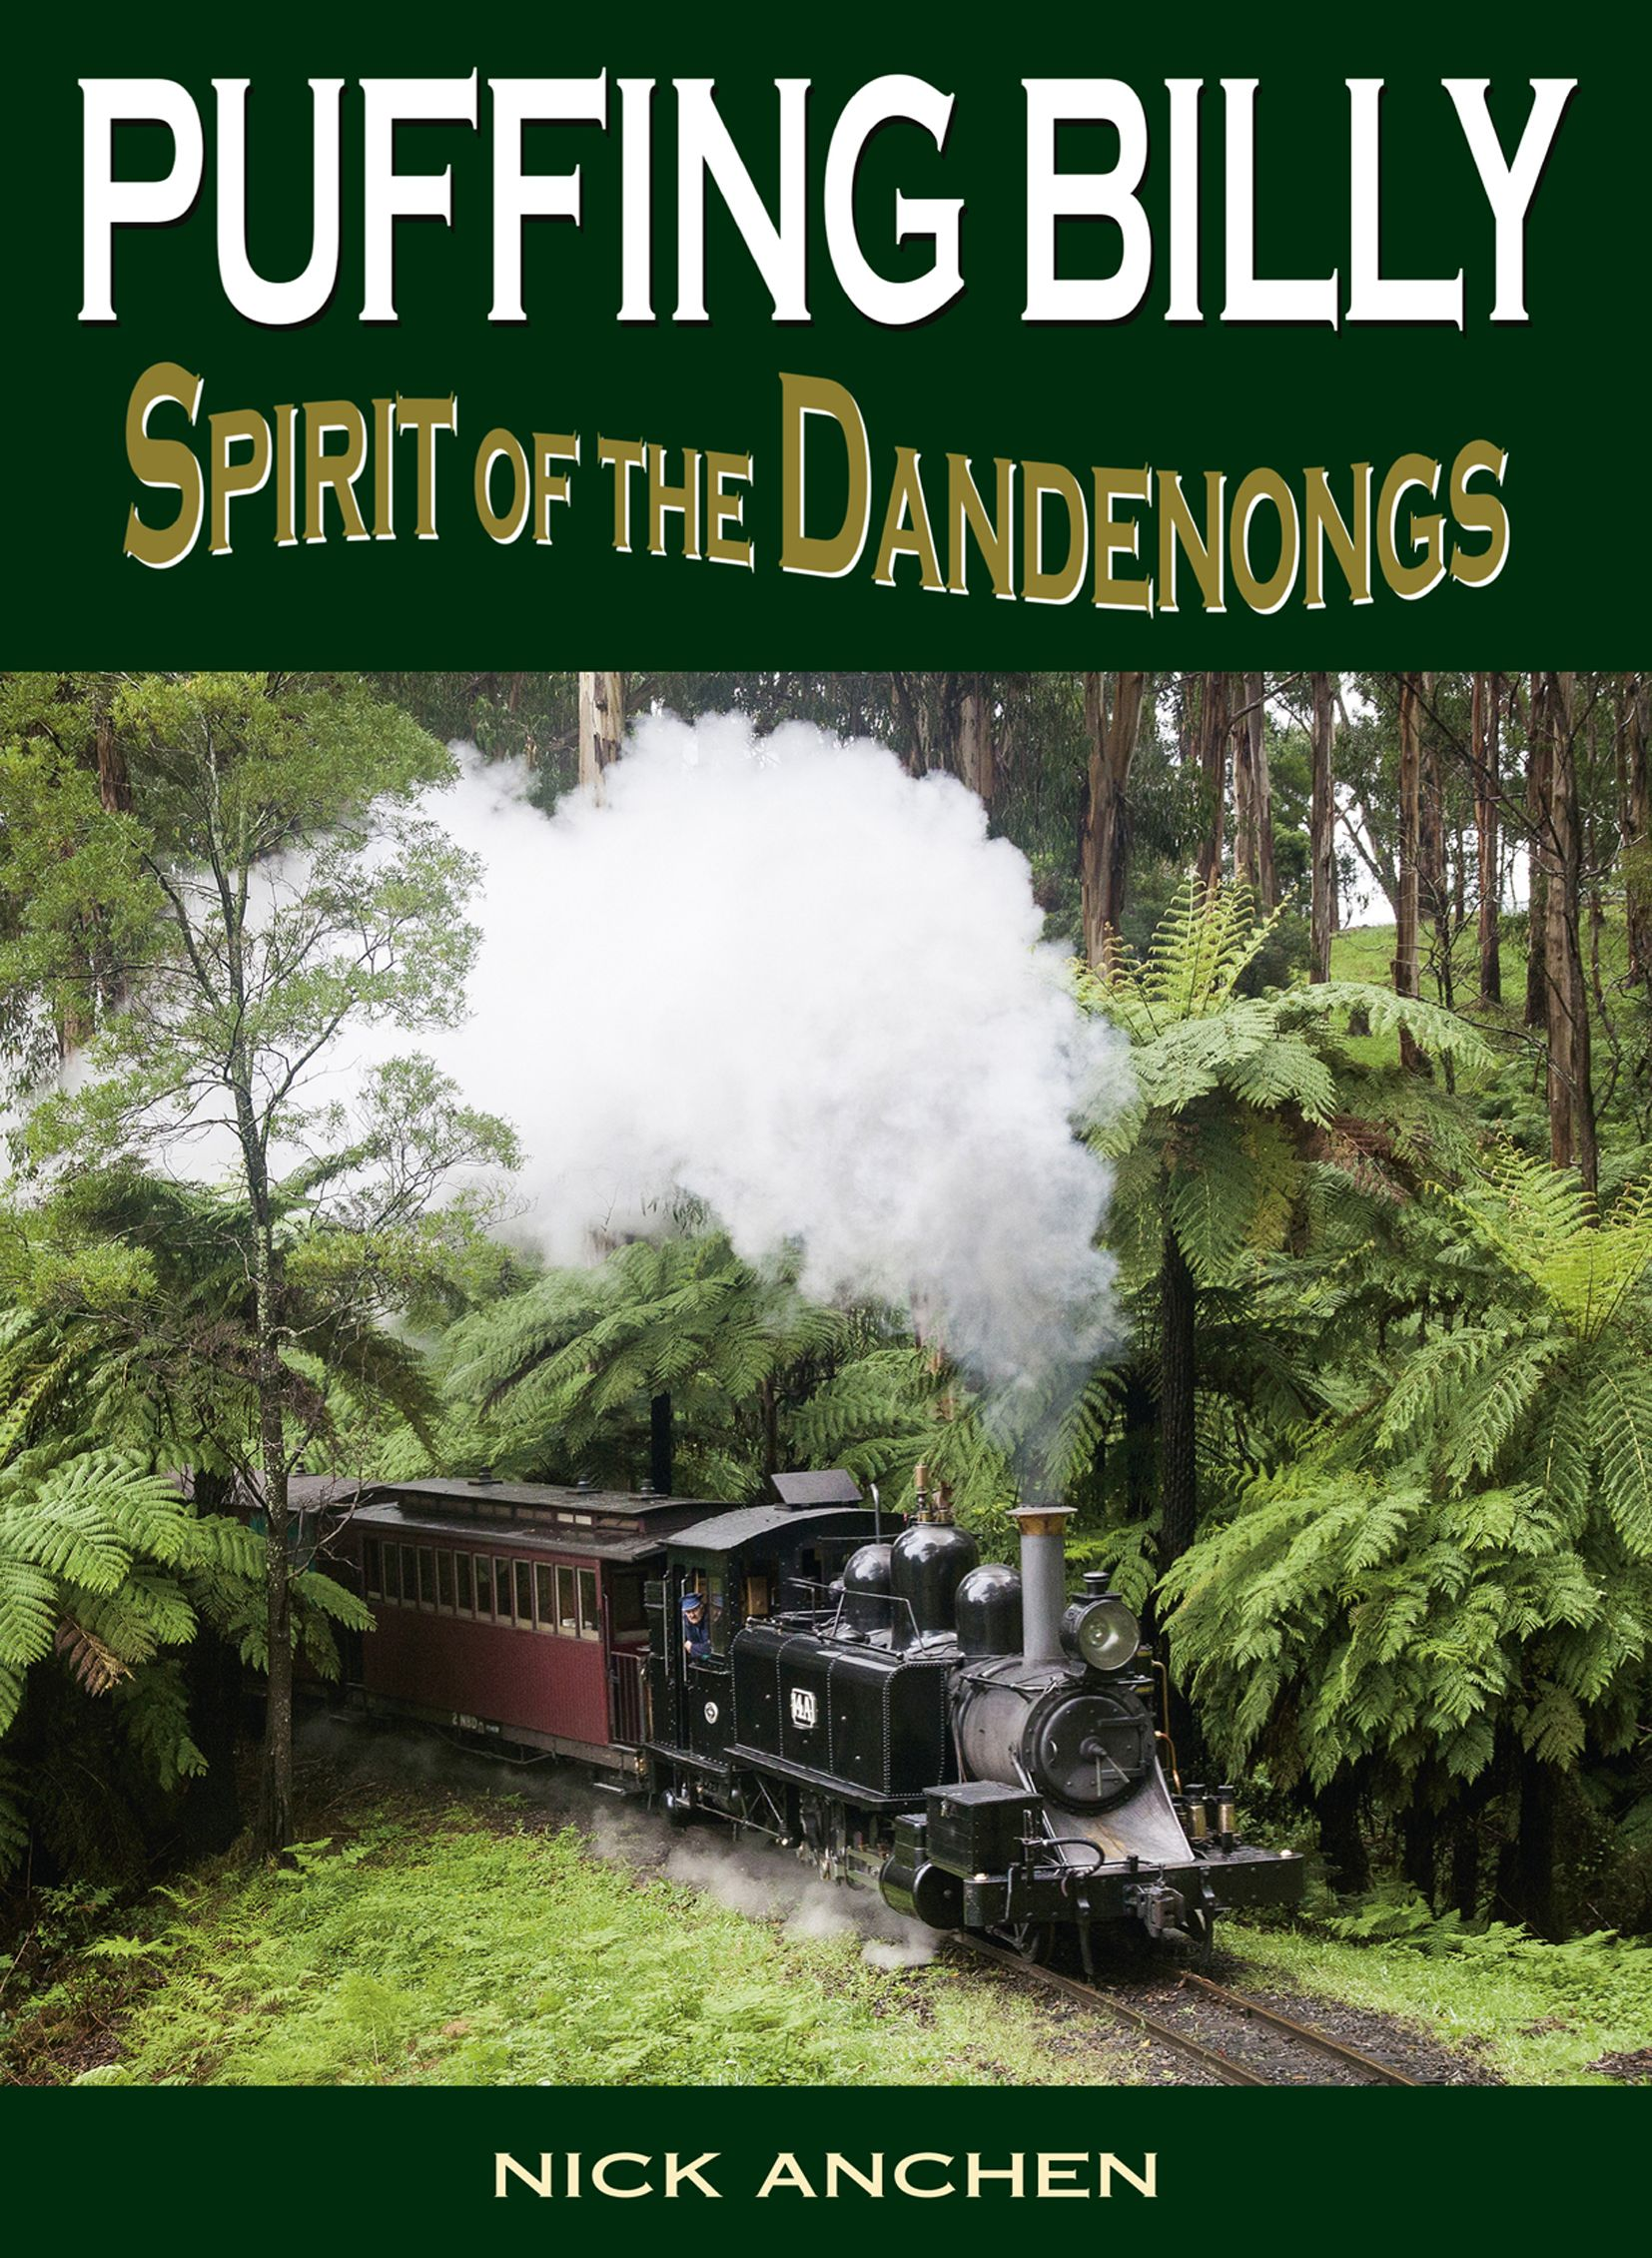 Puffing Billy Spirit of the Dandenongs